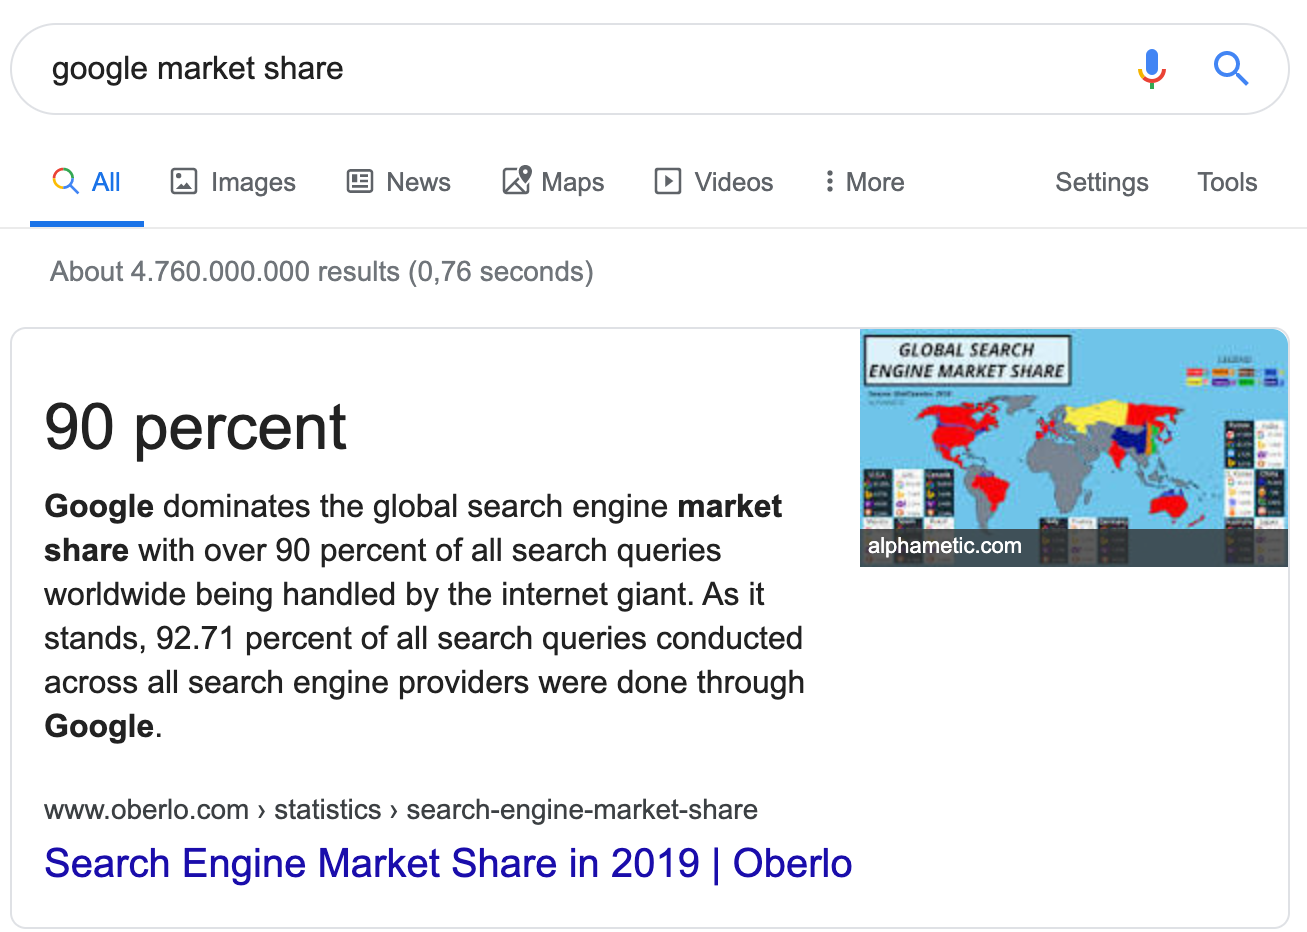 Featured snippet for Google Market Share